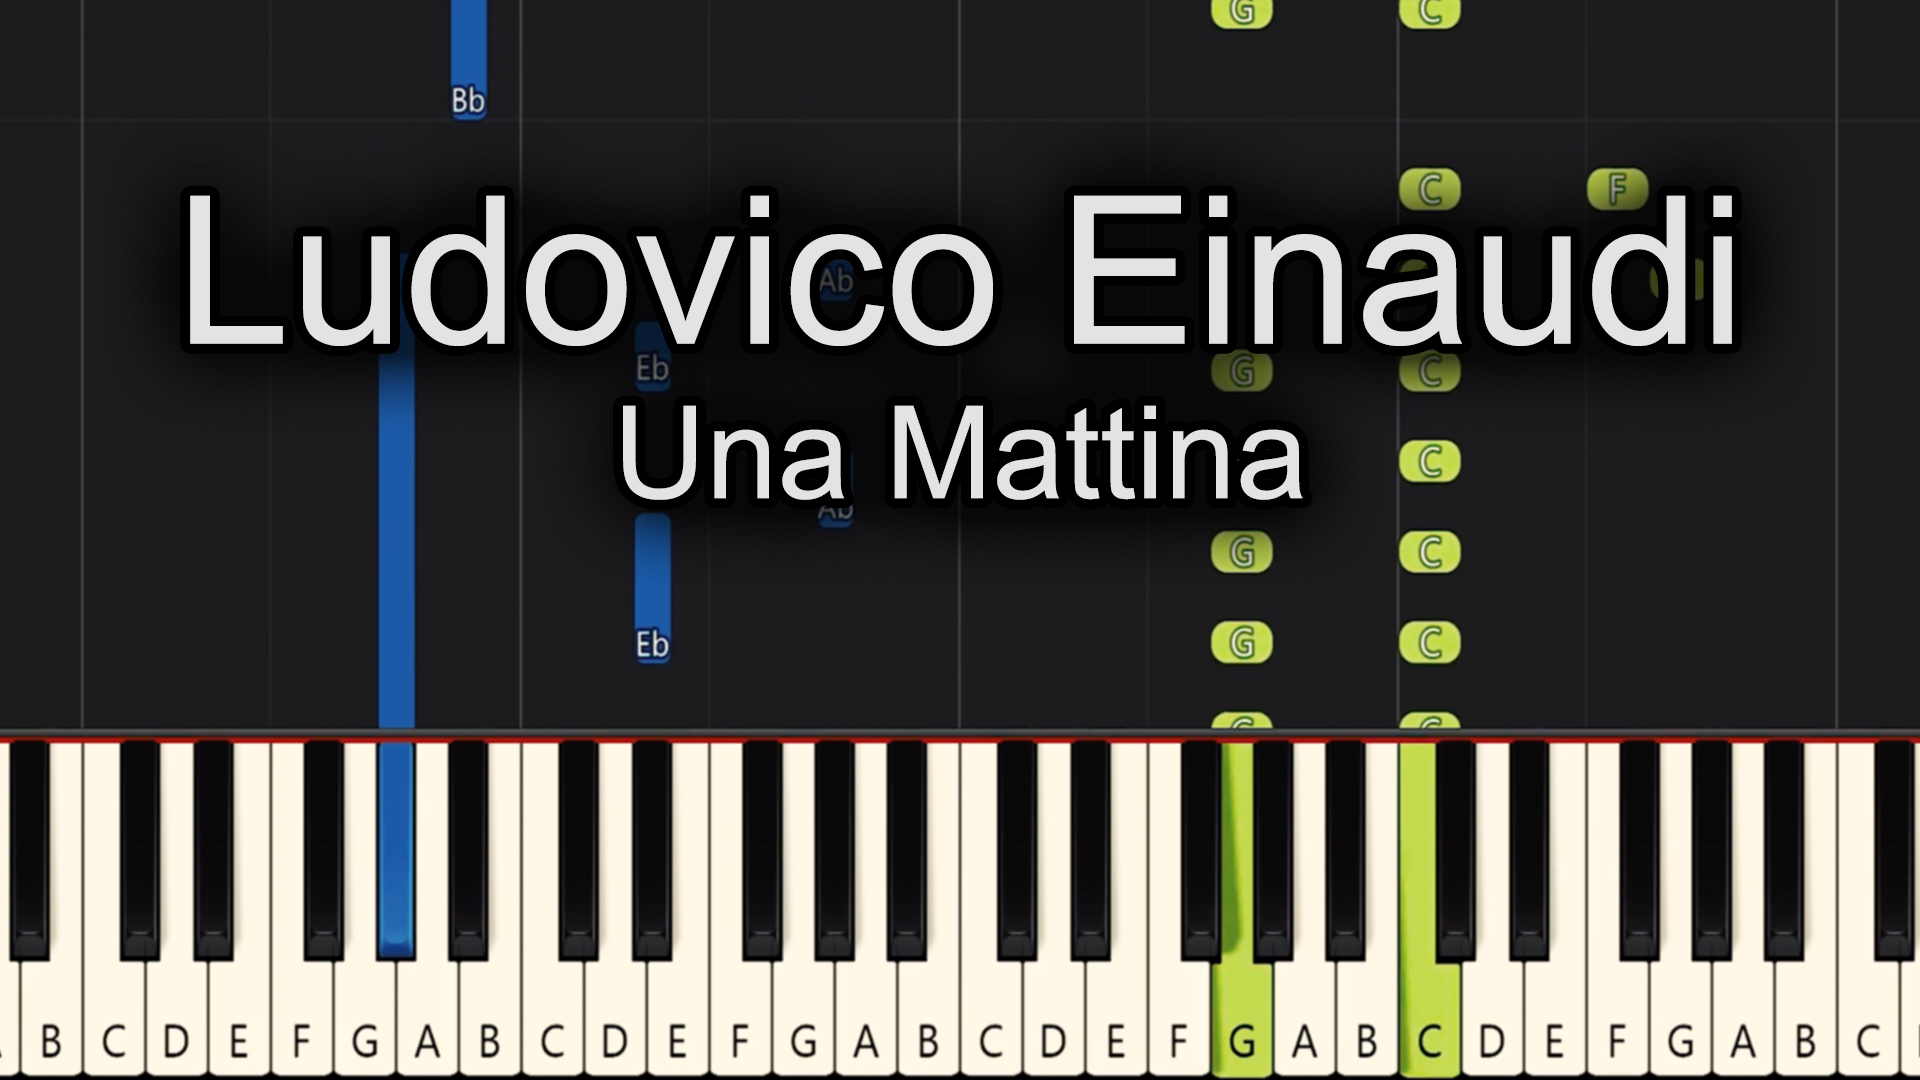 Ludovico Einaudi – Una Mattina – Advanced